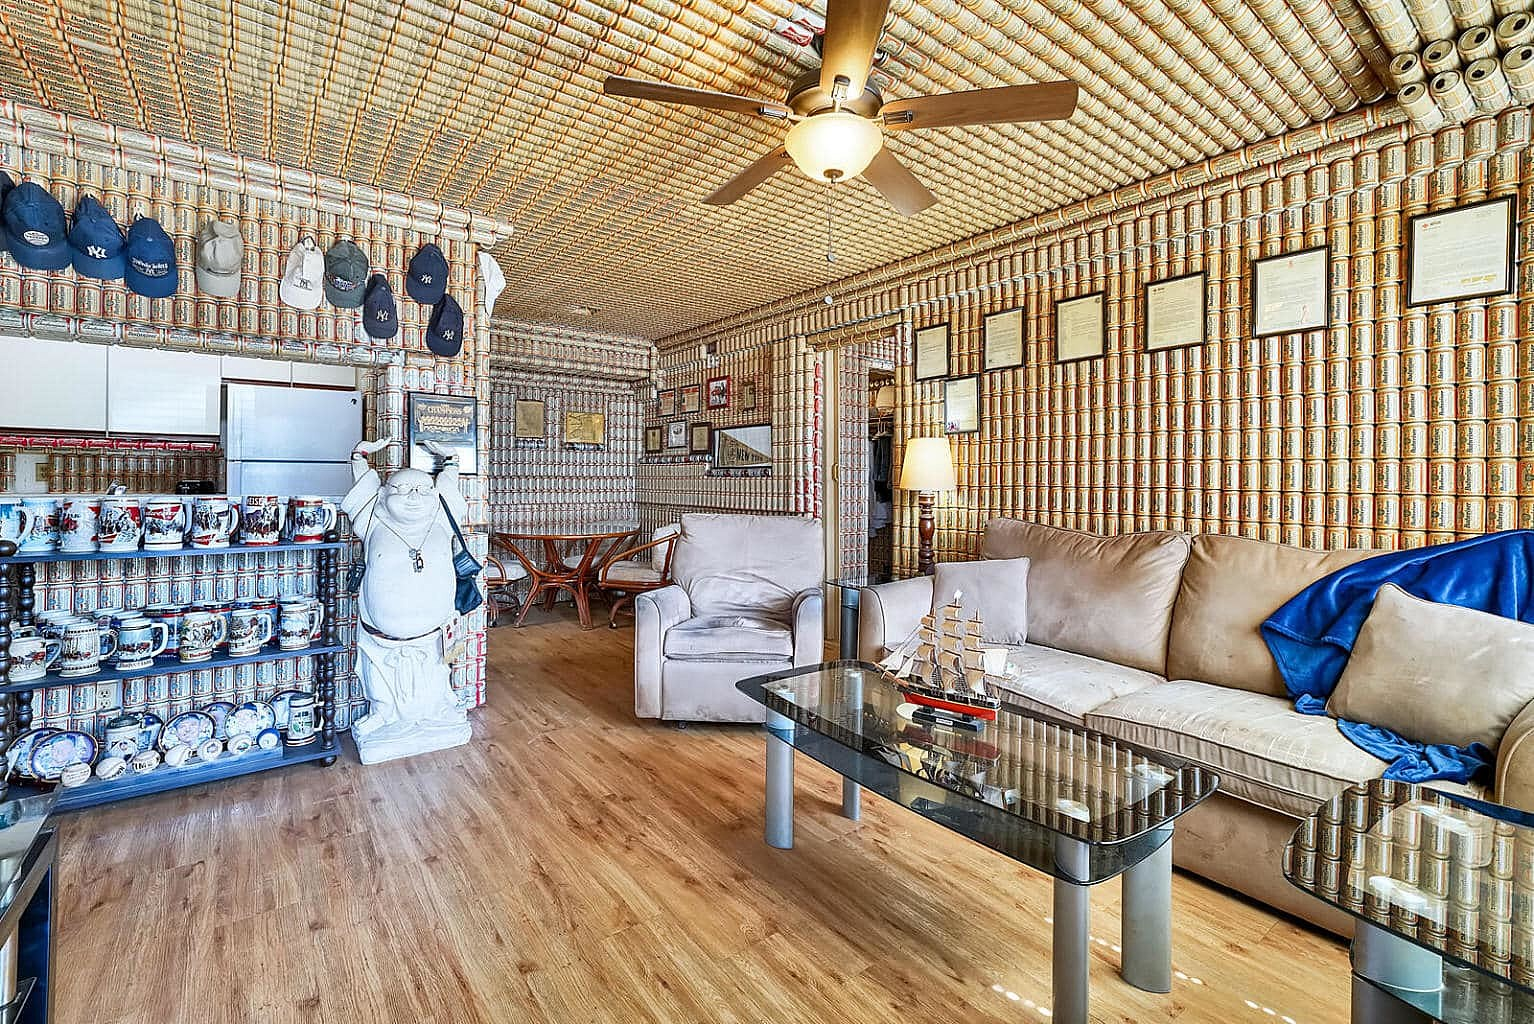 This Budweiser Home Recently Sold for $100,000